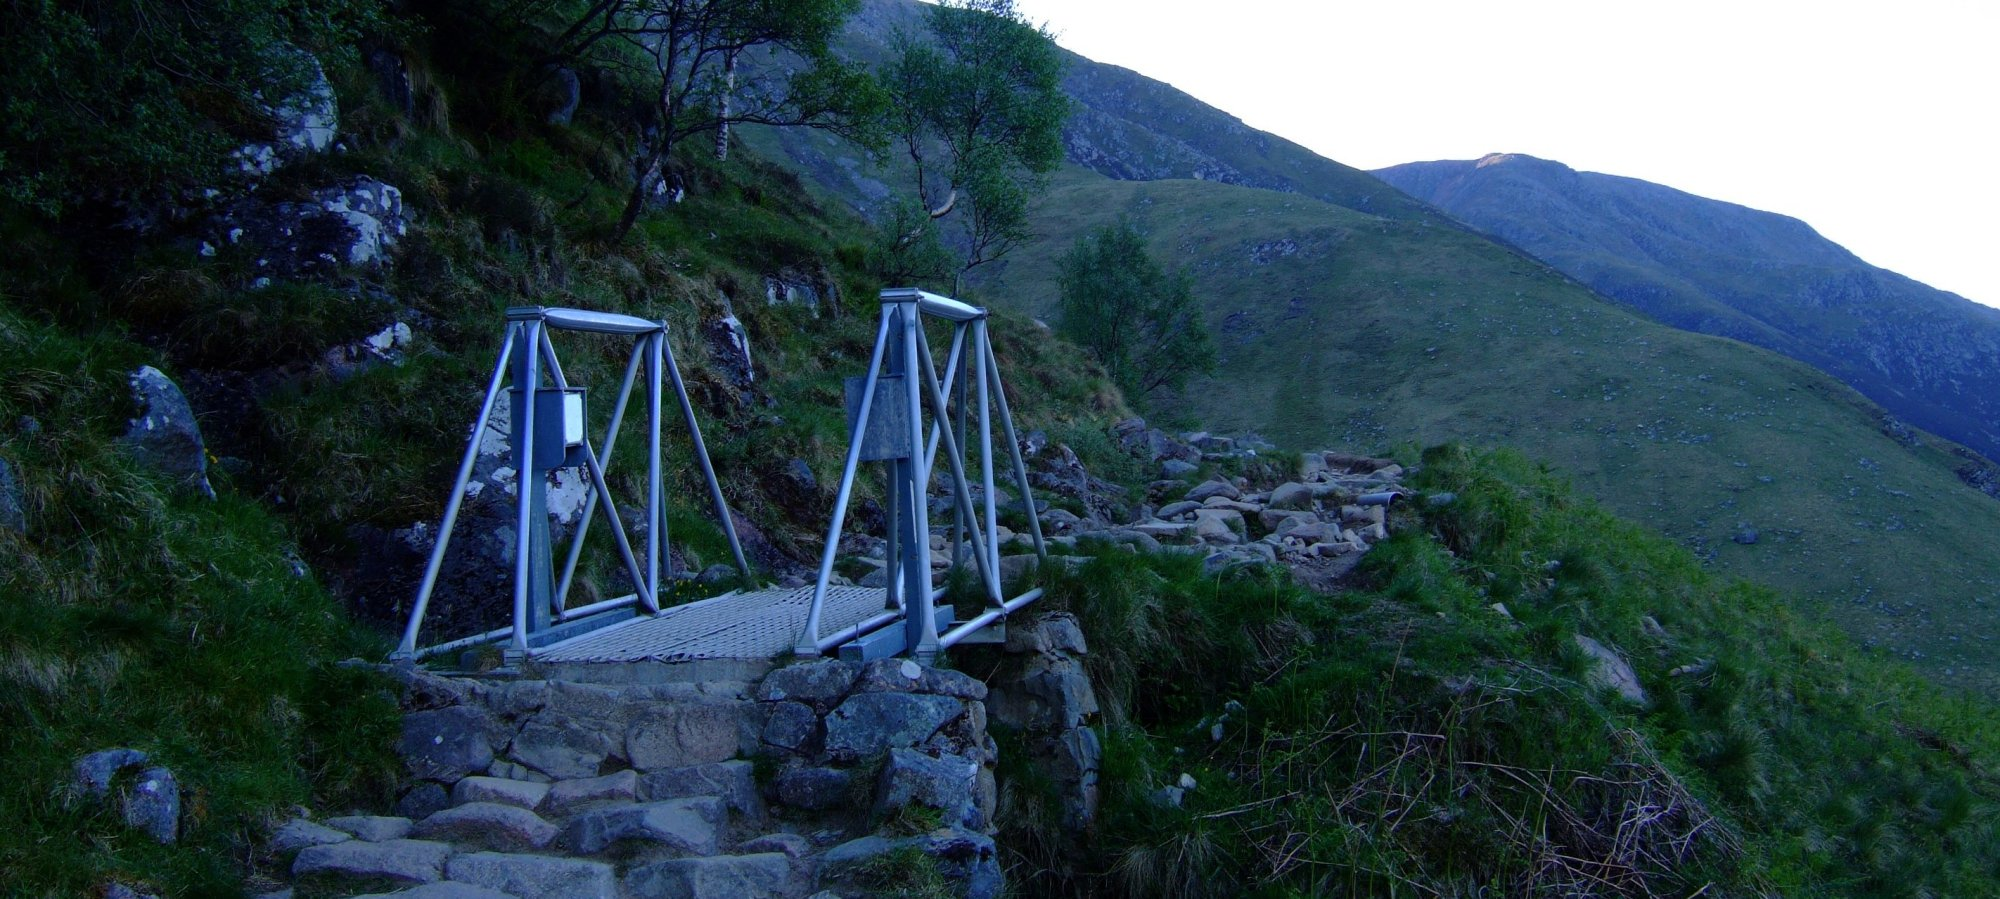 Bridge on the path to Ben Nevis